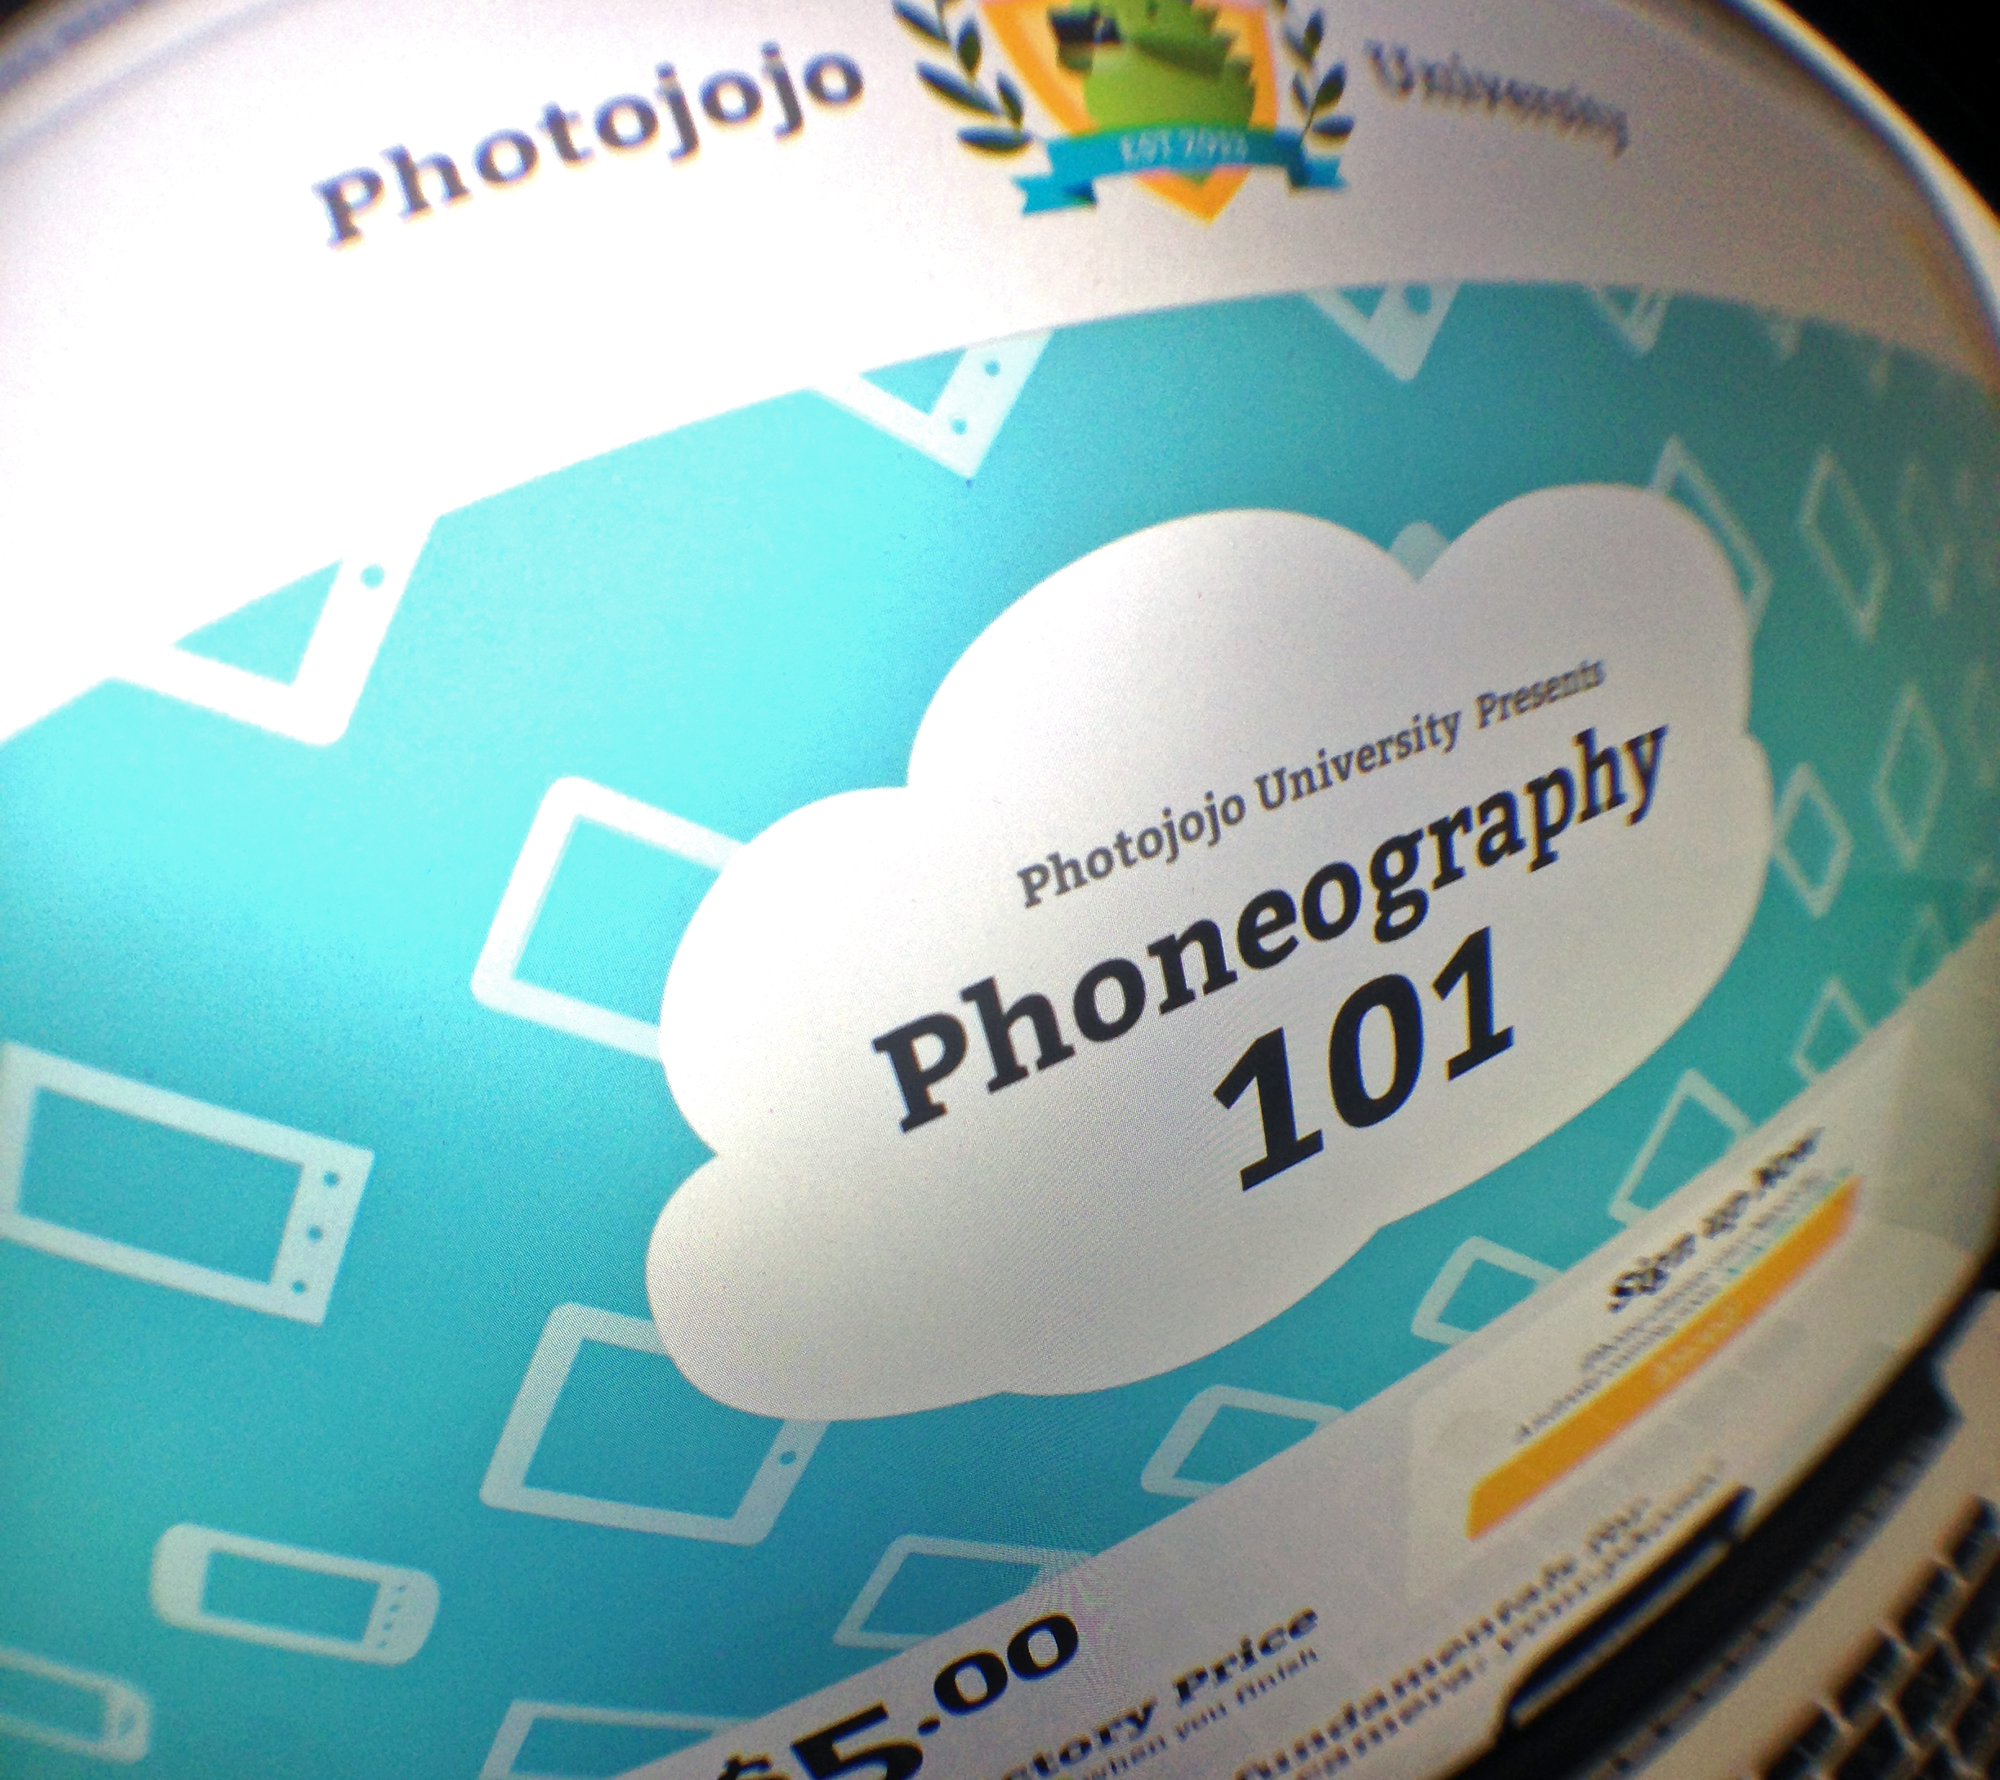 Photojojo - Phoneography 101